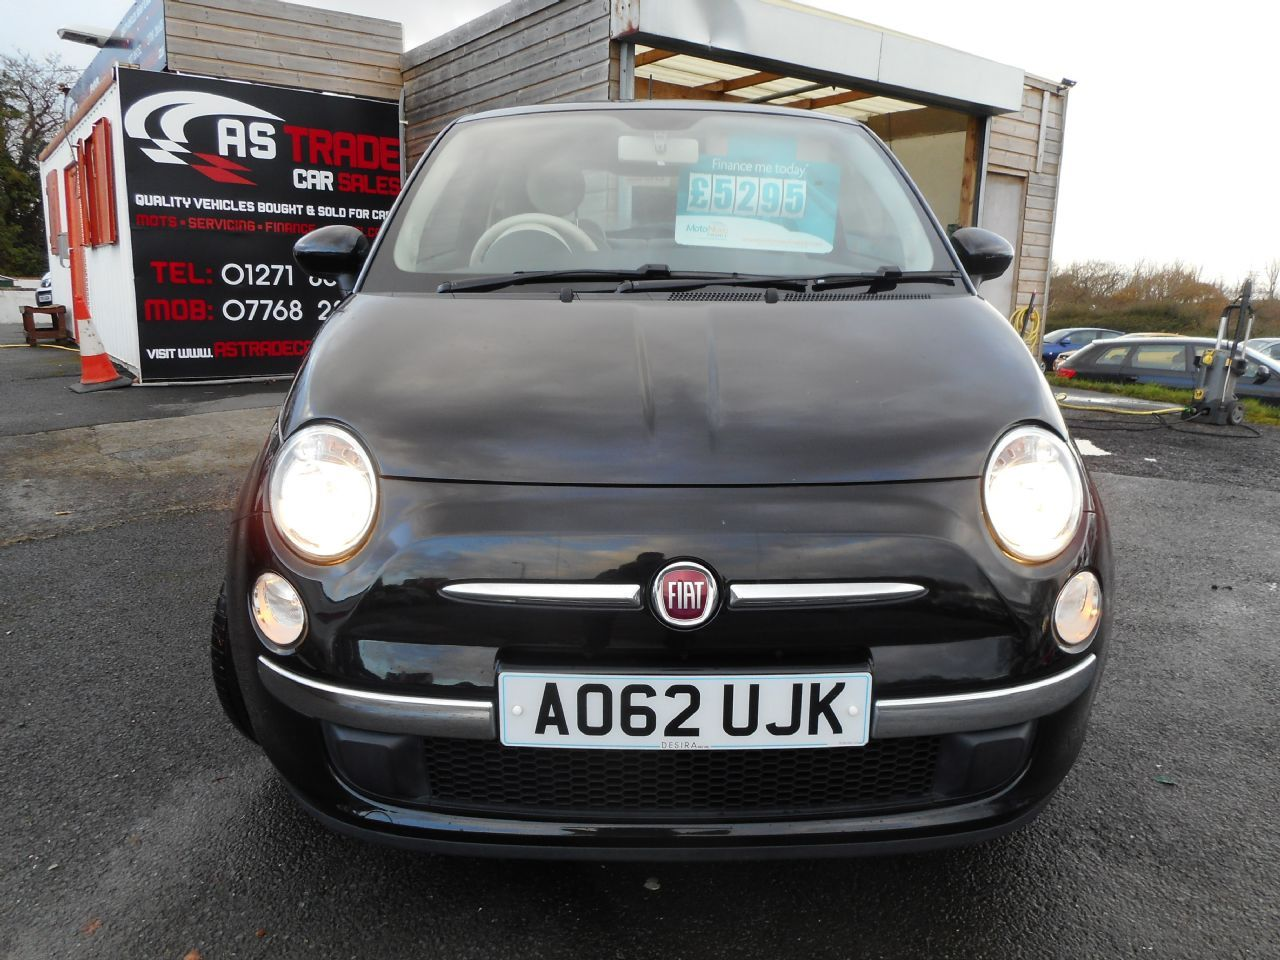 FIAT 500 1.2i Lounge S/S - Picture 2